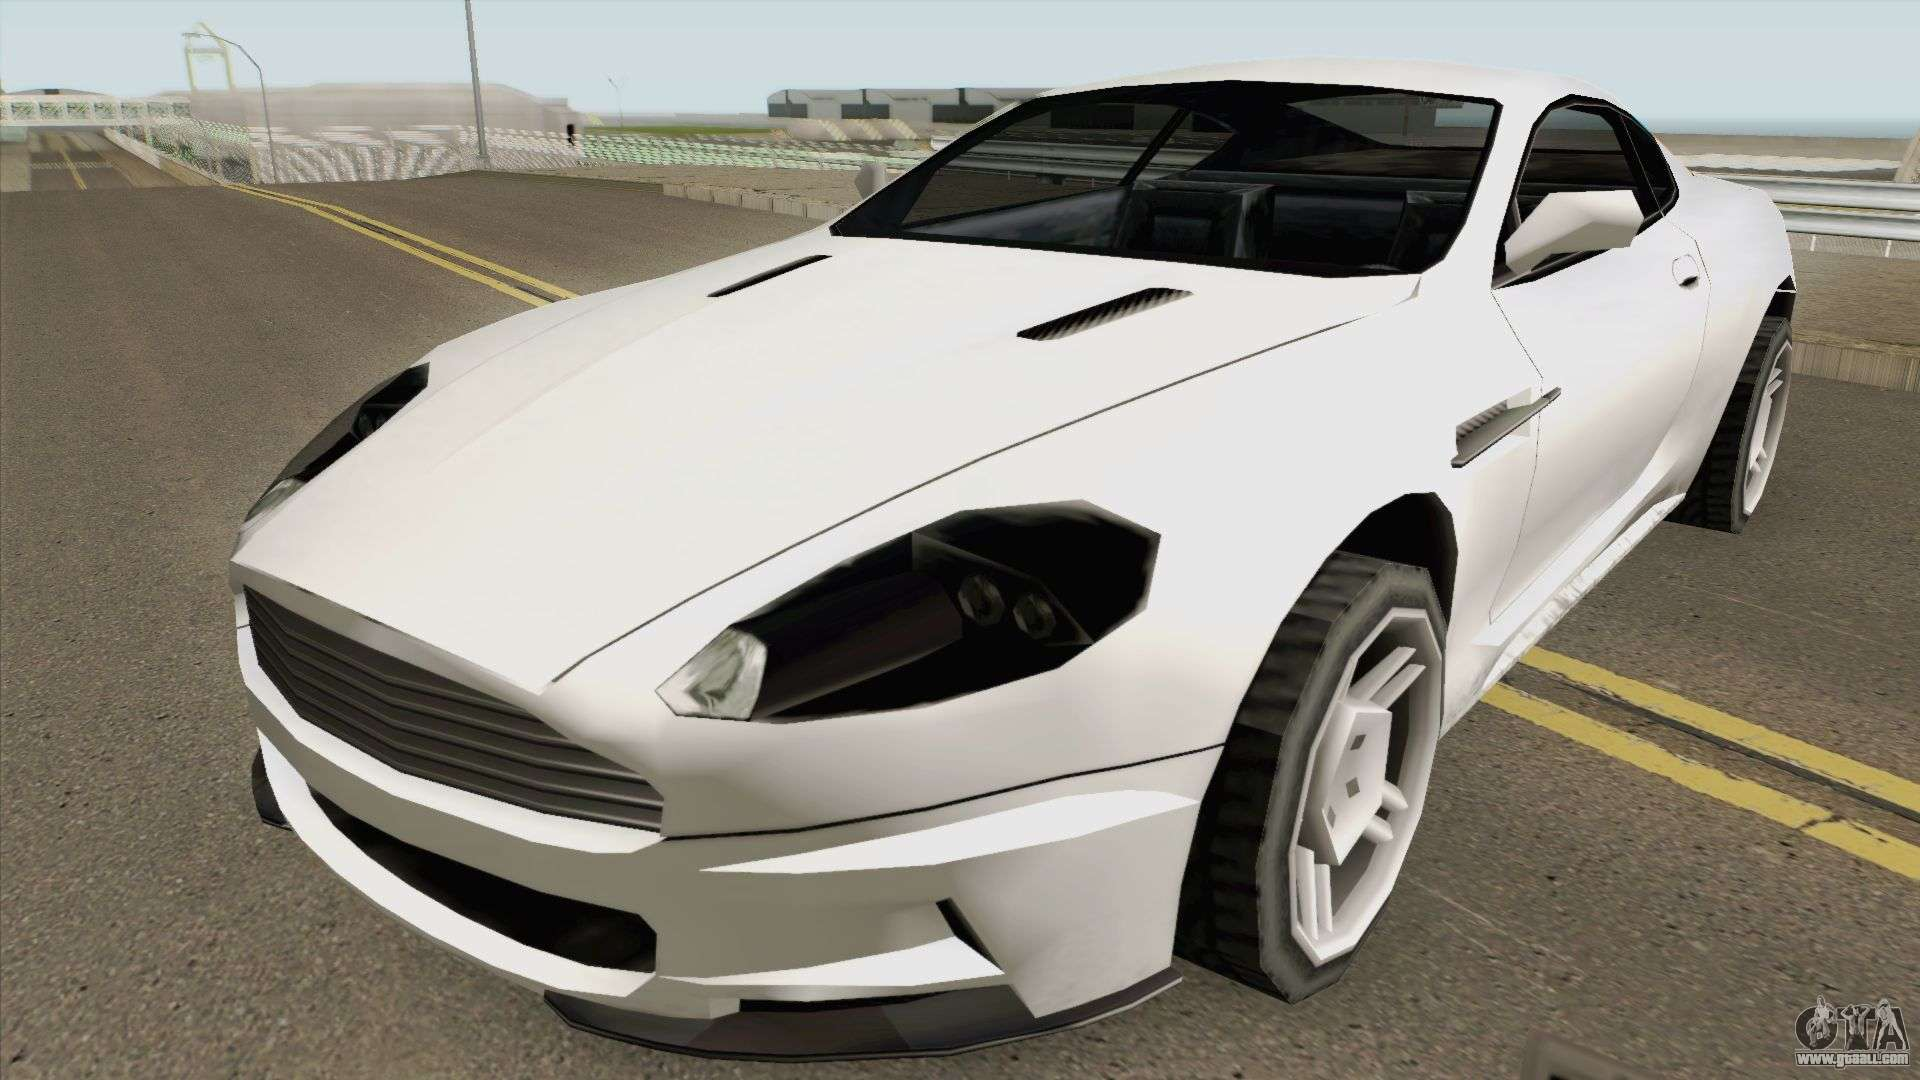 Aston Martin DB9 Low Poly for GTA San Andreas